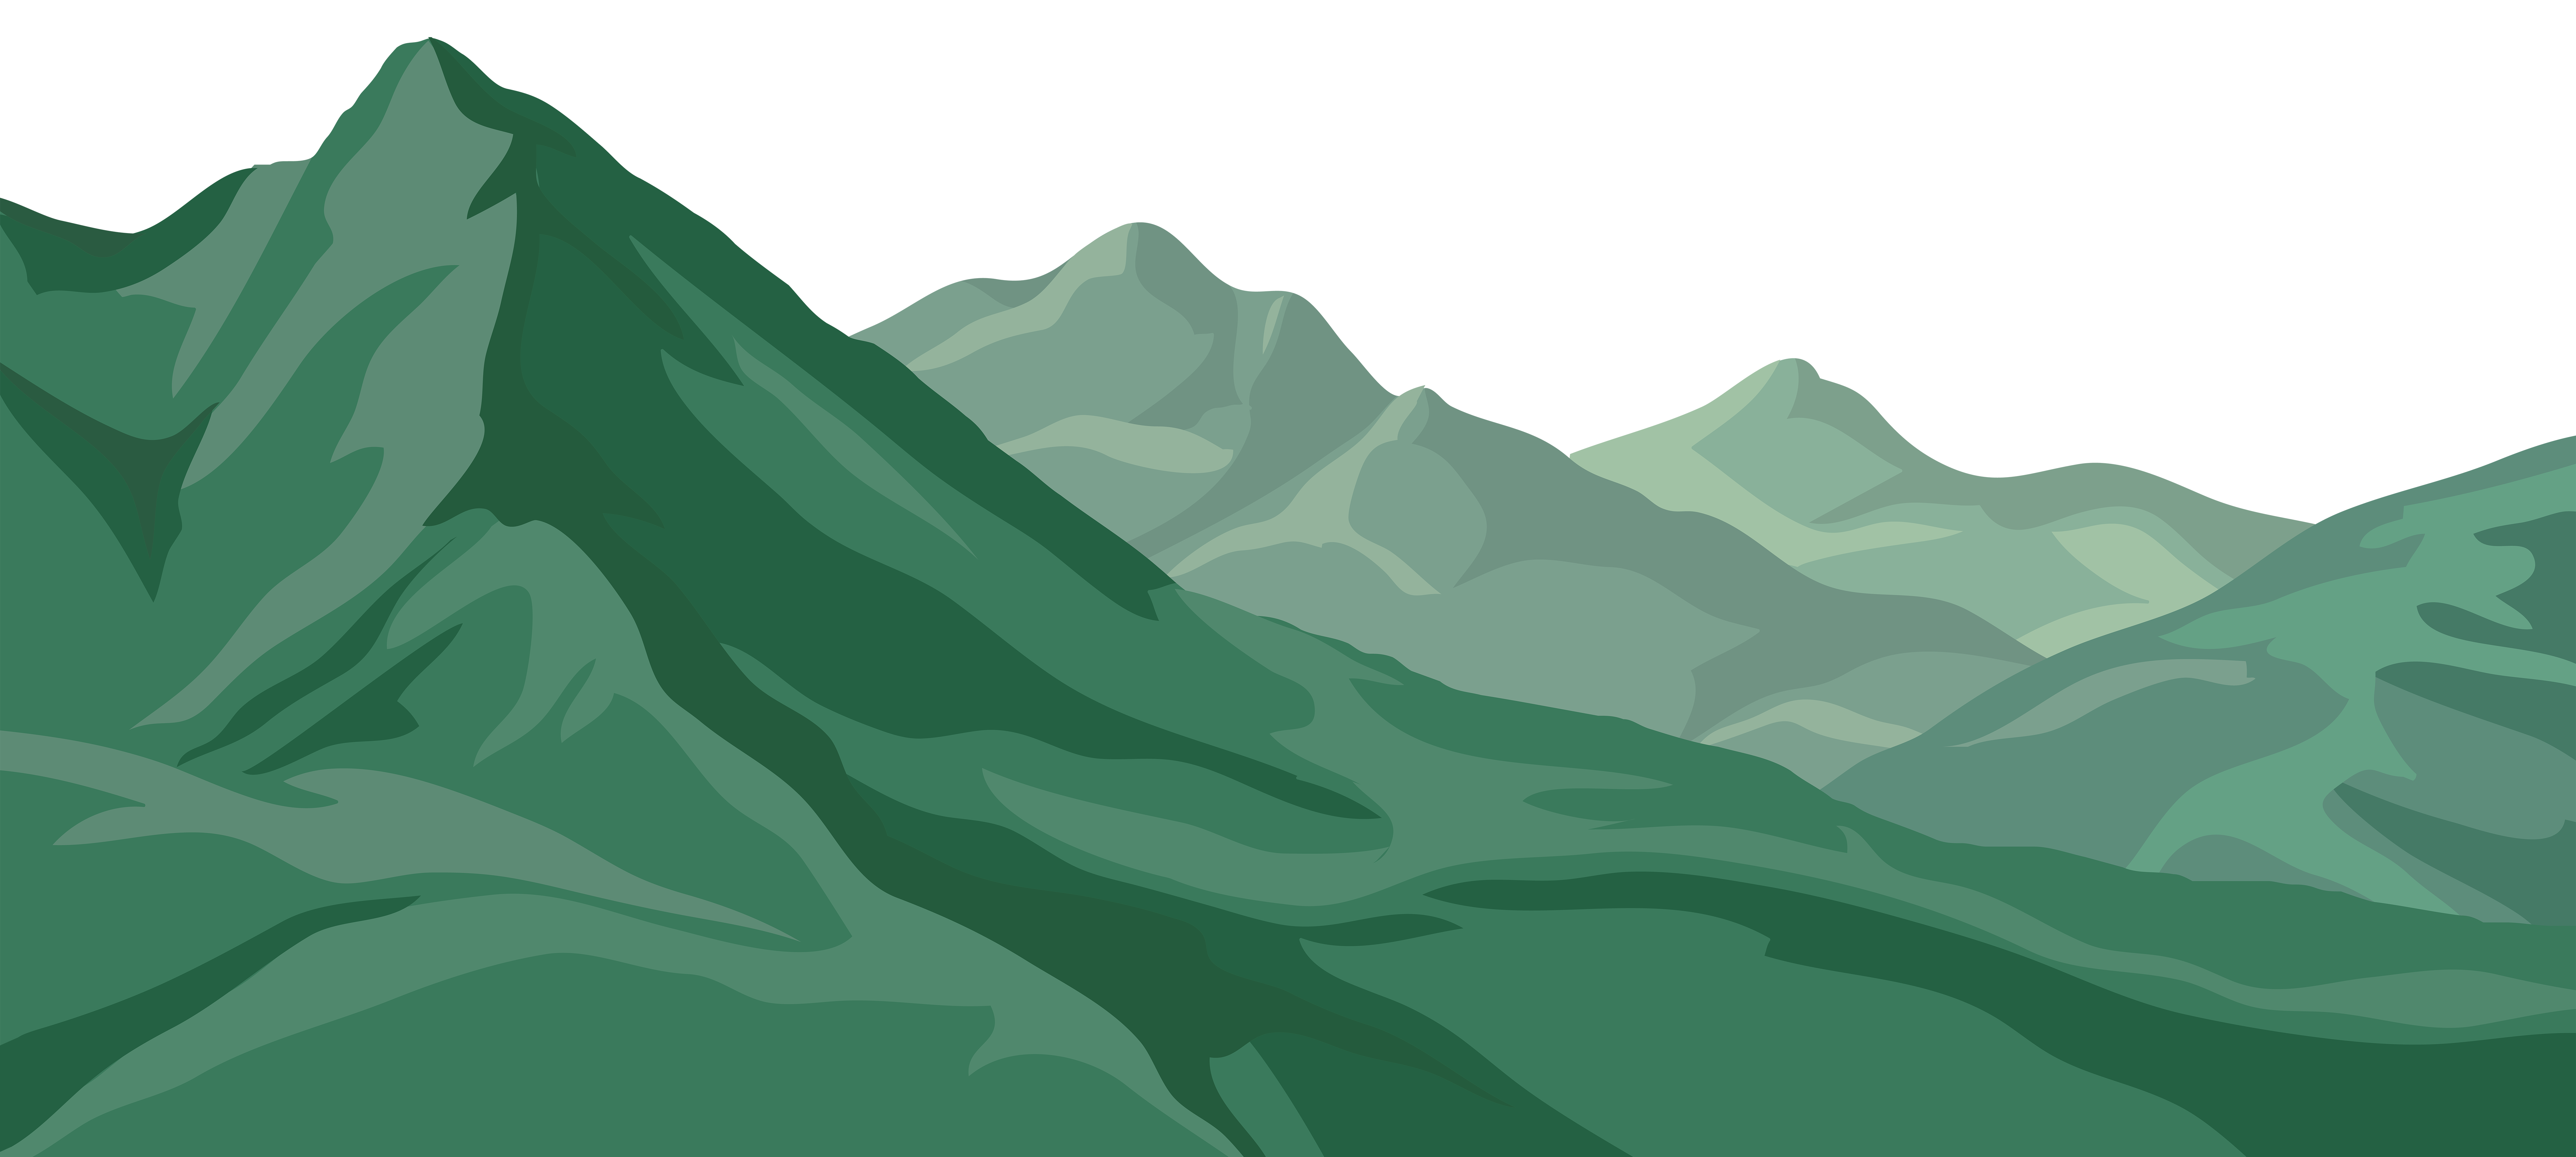 Mountain png. Clip art image gallery